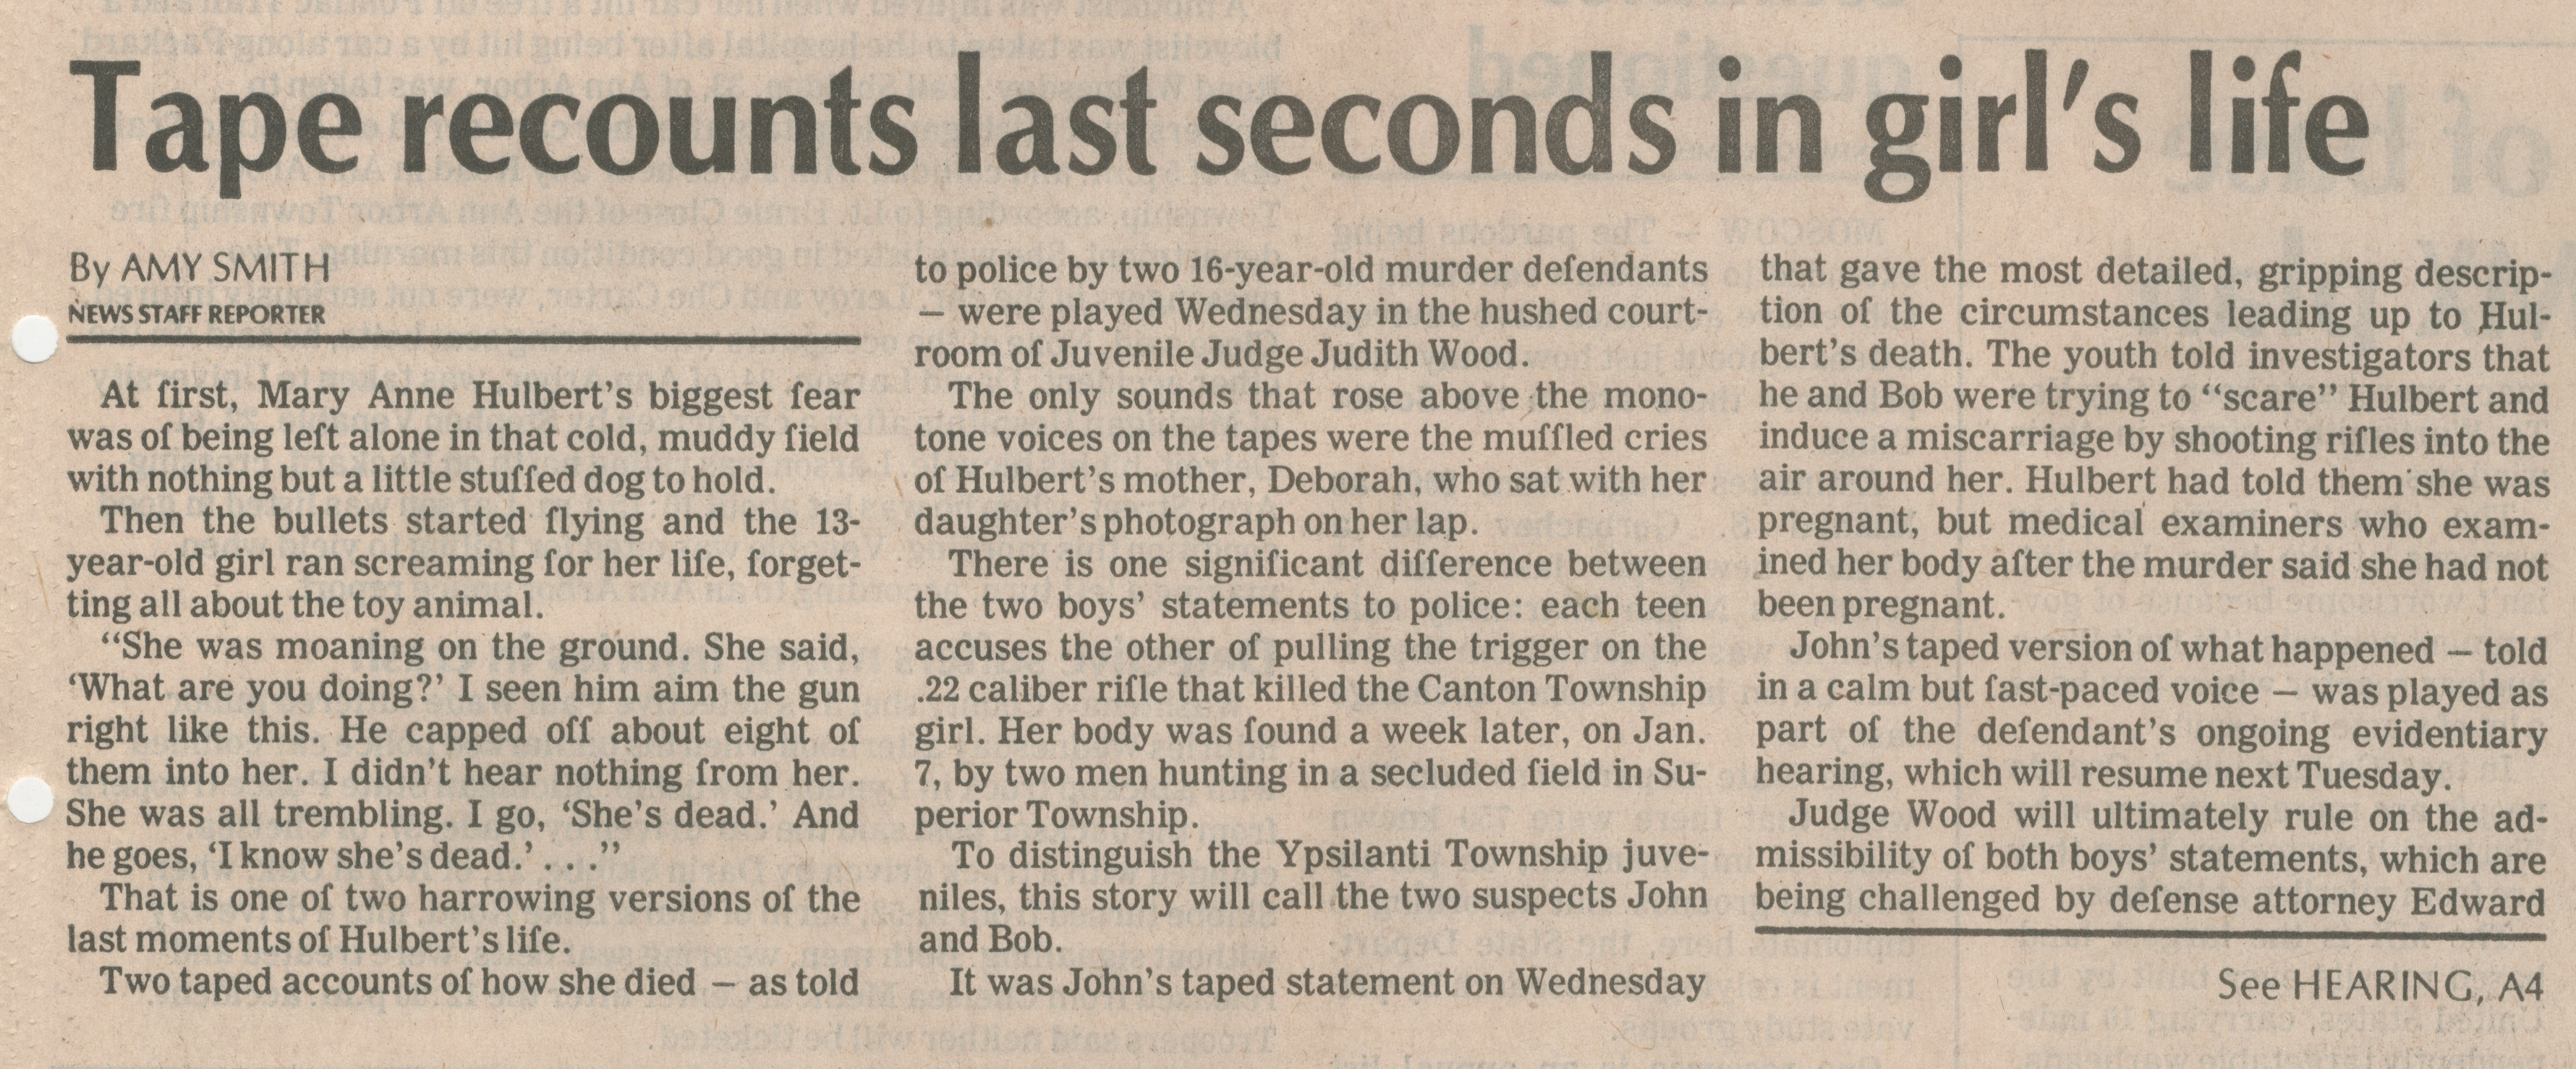 Tape Recounts Last Seconds In Girl's Life image